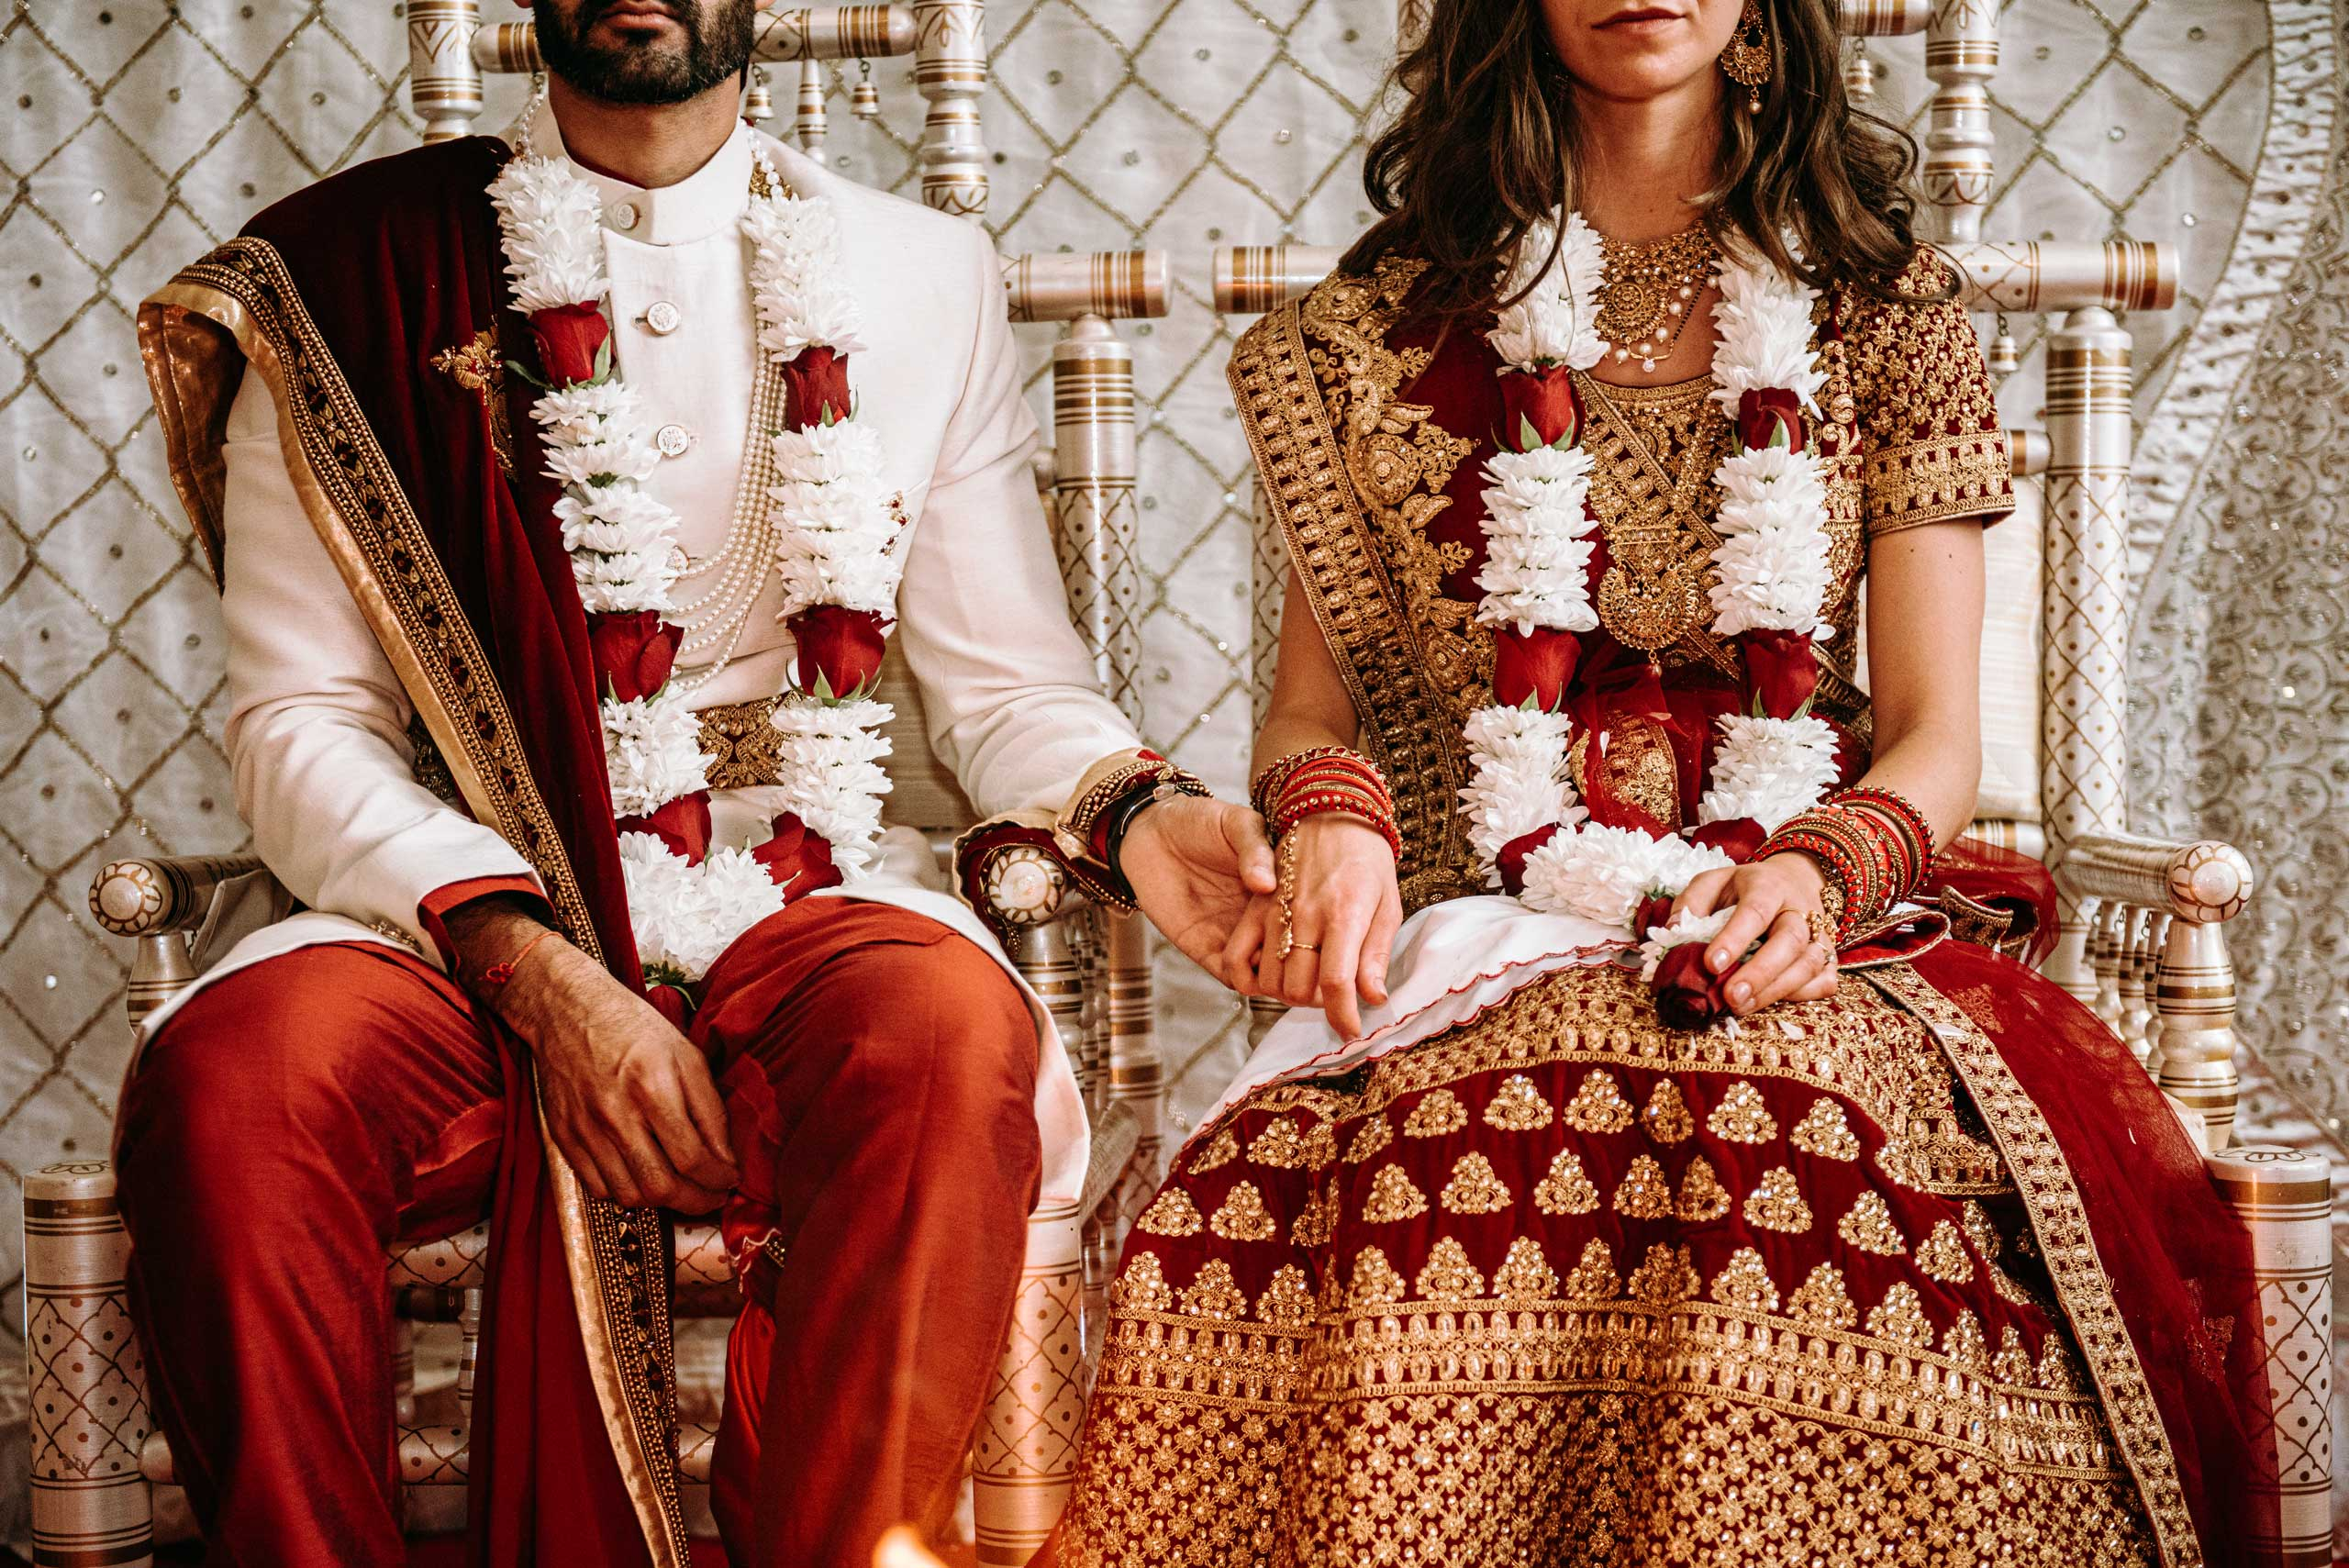 Shahil & Ellie indian wedding at Merriscourt Barn Chipping norton.